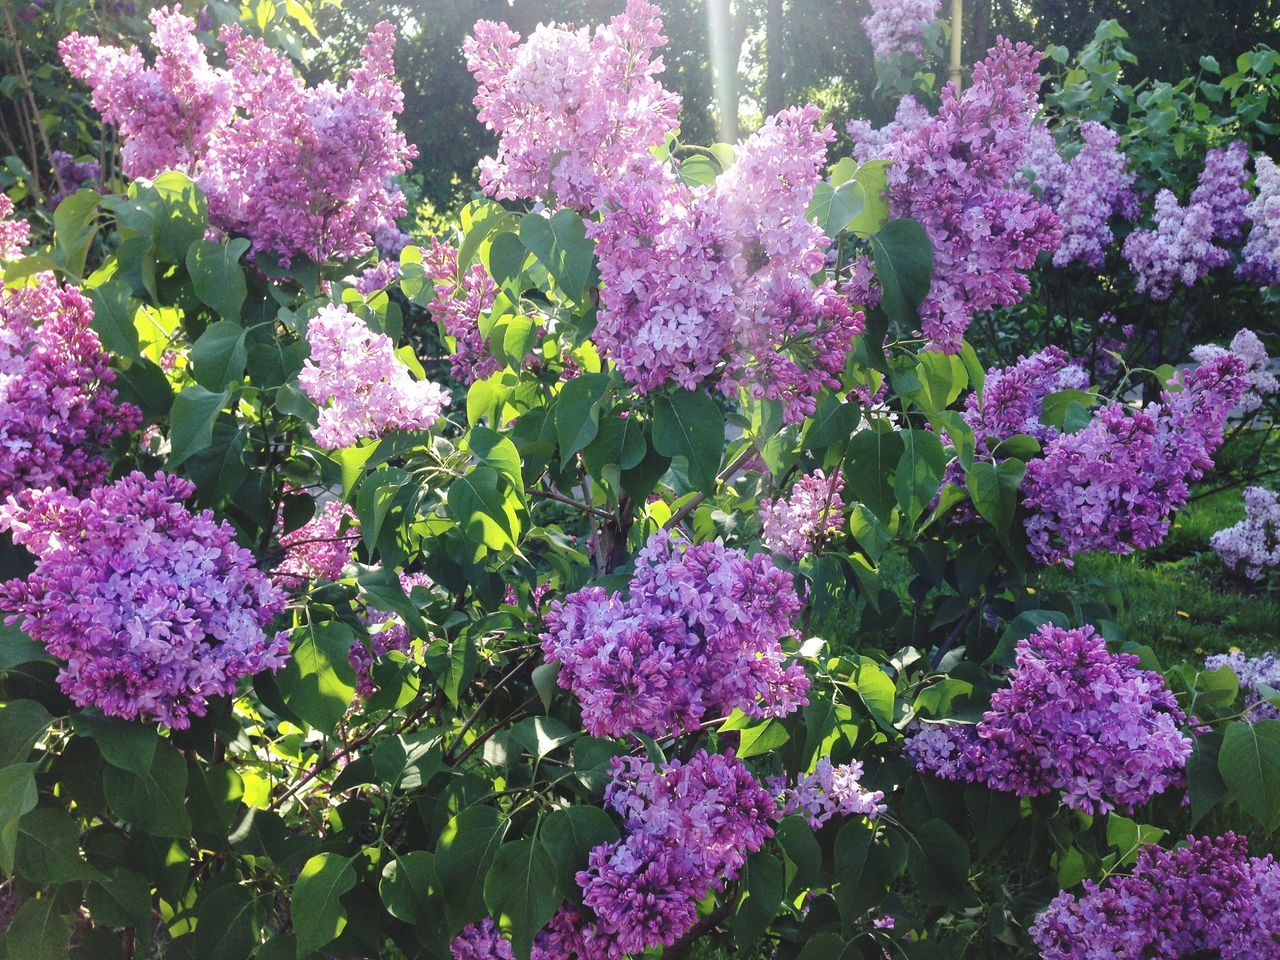 Low Angle View Of Lilacs Blooming At Park